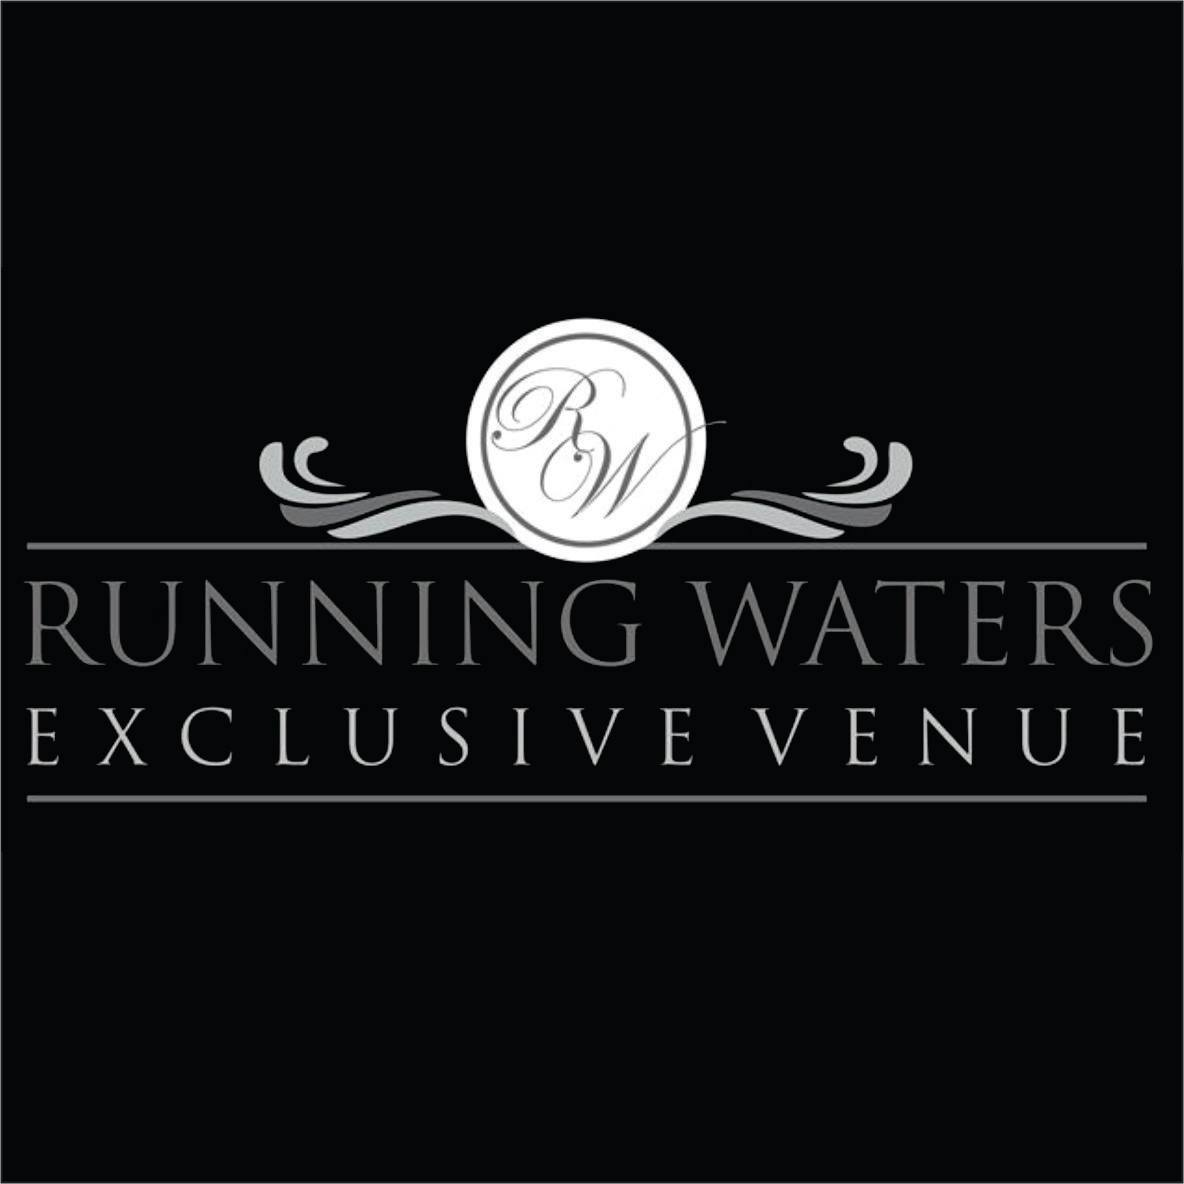 Running Waters Exclusive Venue